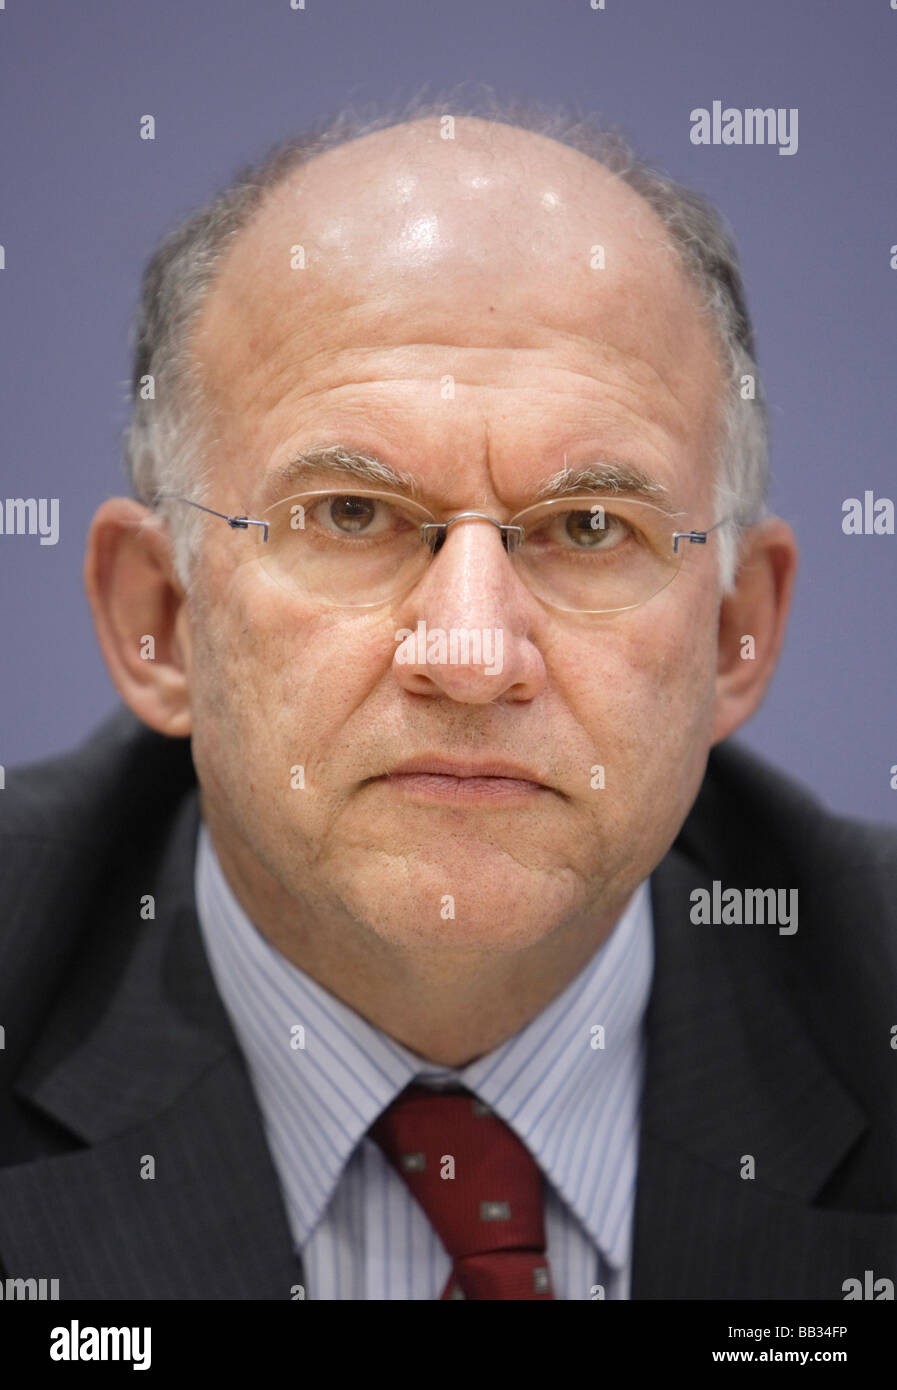 Peter SCHAAR the Federal Commissioner for Data Protection and Freedom of Information - Stock Image